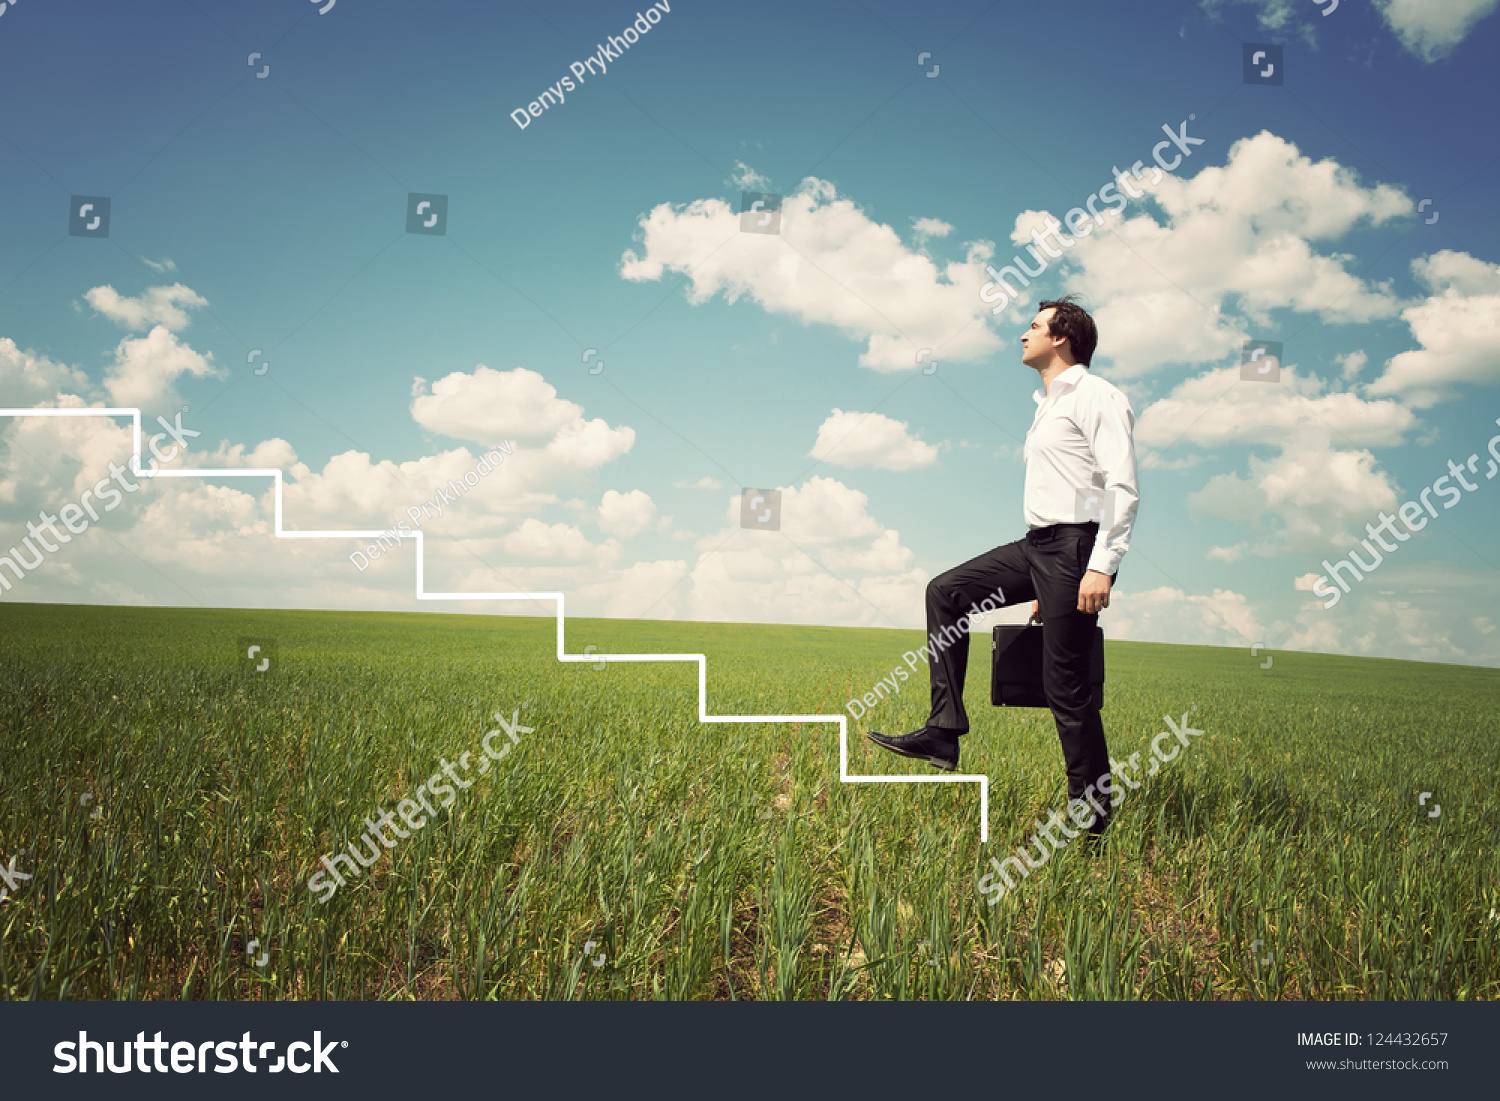 businessman in white shirt walks up the ladder in the green field save to a lightbox